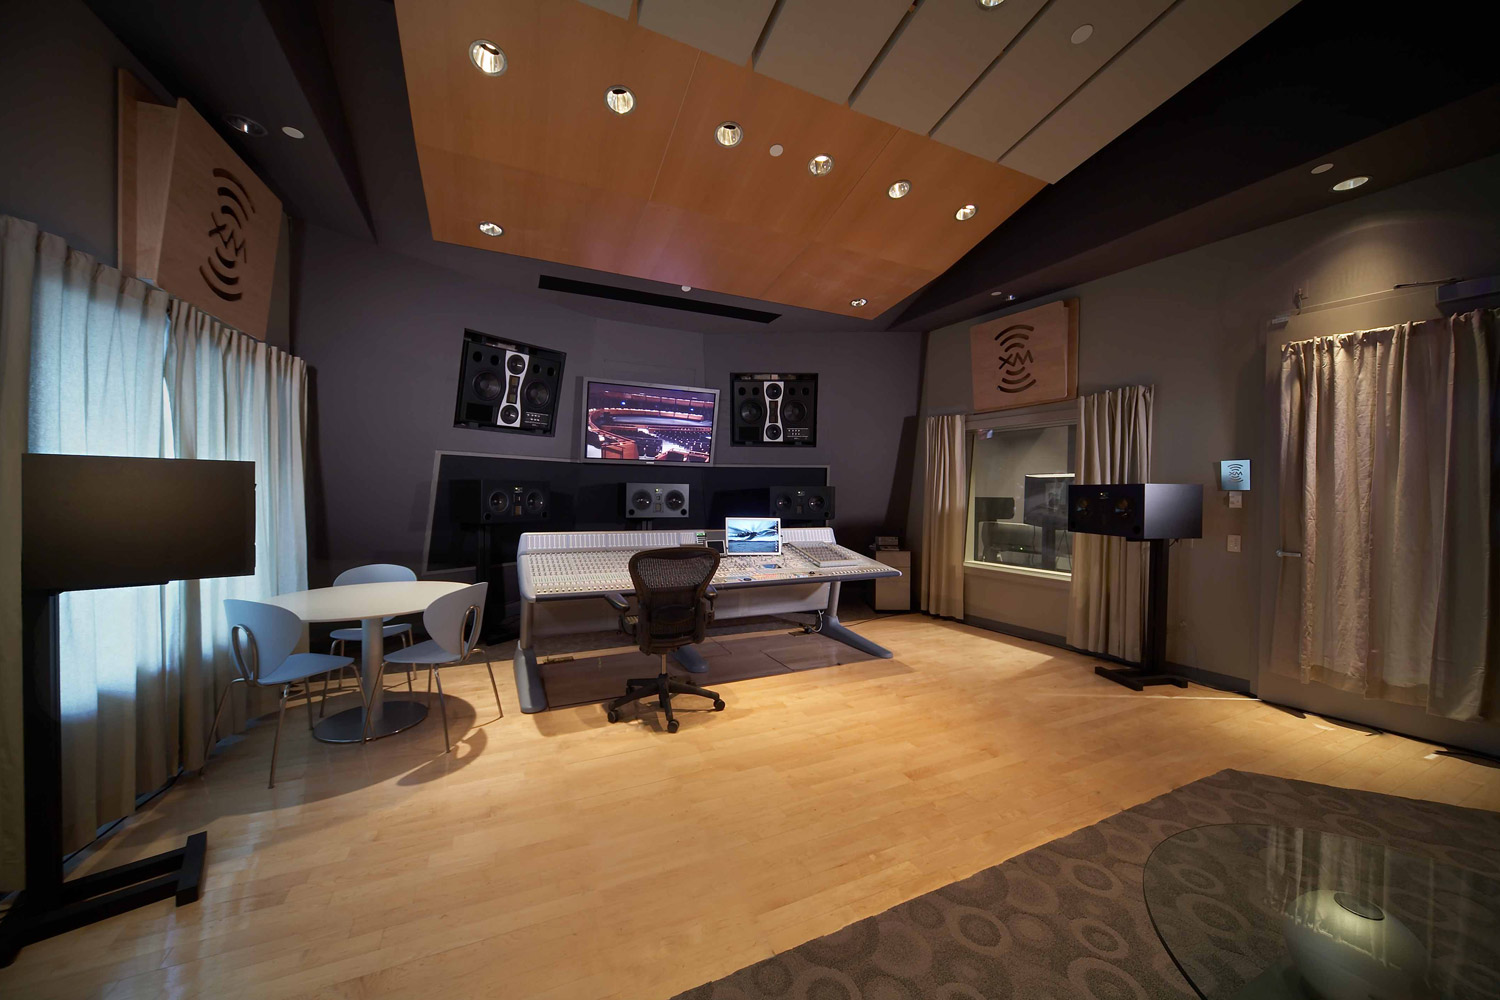 Jazz at Lincoln Center in Columbus Circus, NYC. Acoustic design and internal room acoustics by WSDG. WSDG-designed Recording studio.